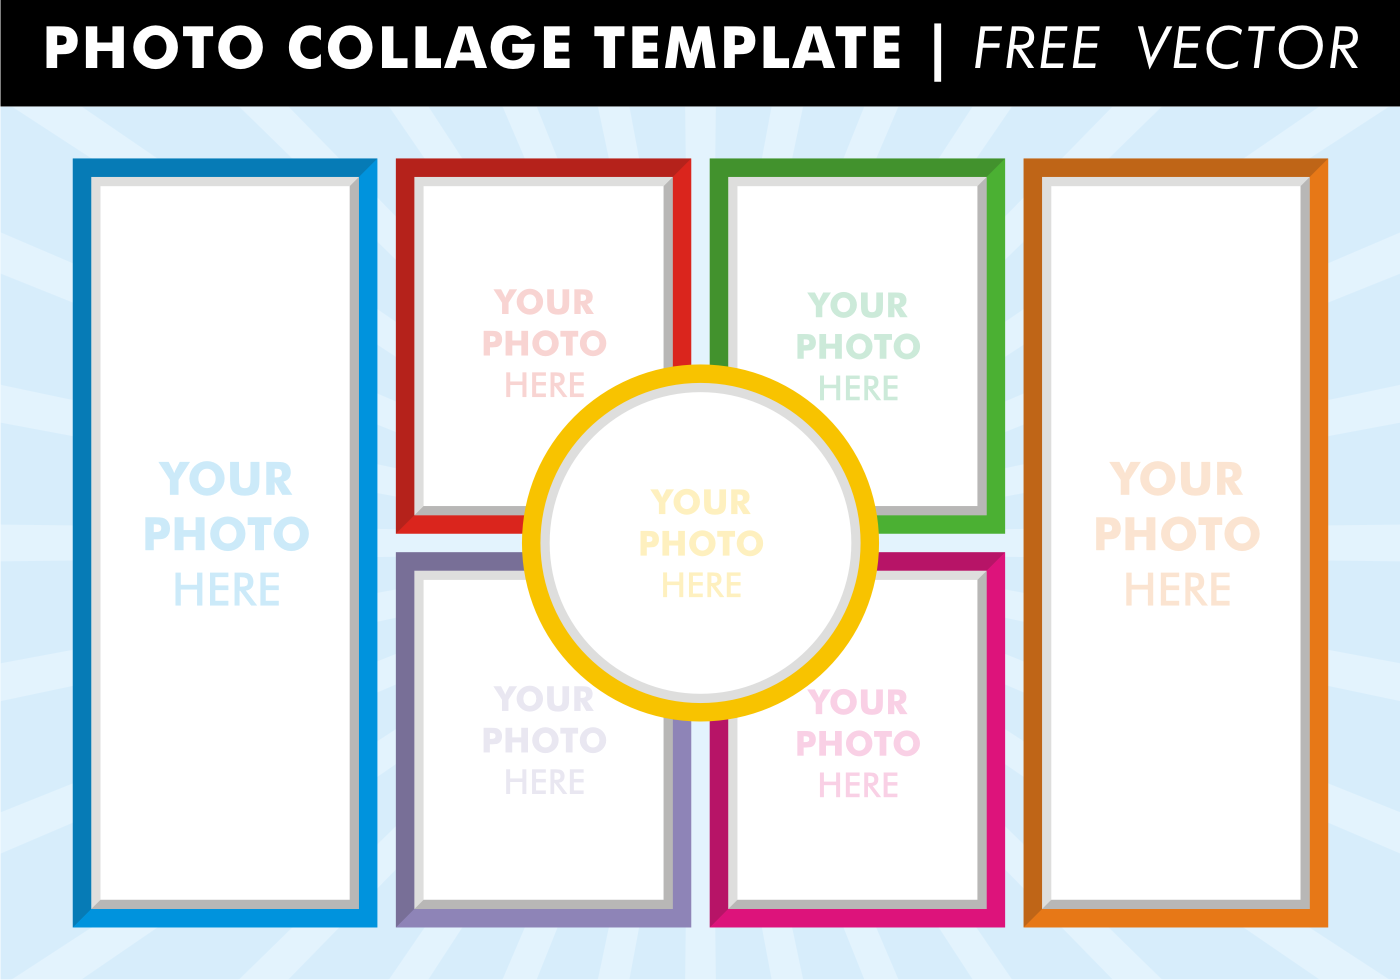 Photo Collage Templates Free Vector - Download Free Vector Art, Stock ...